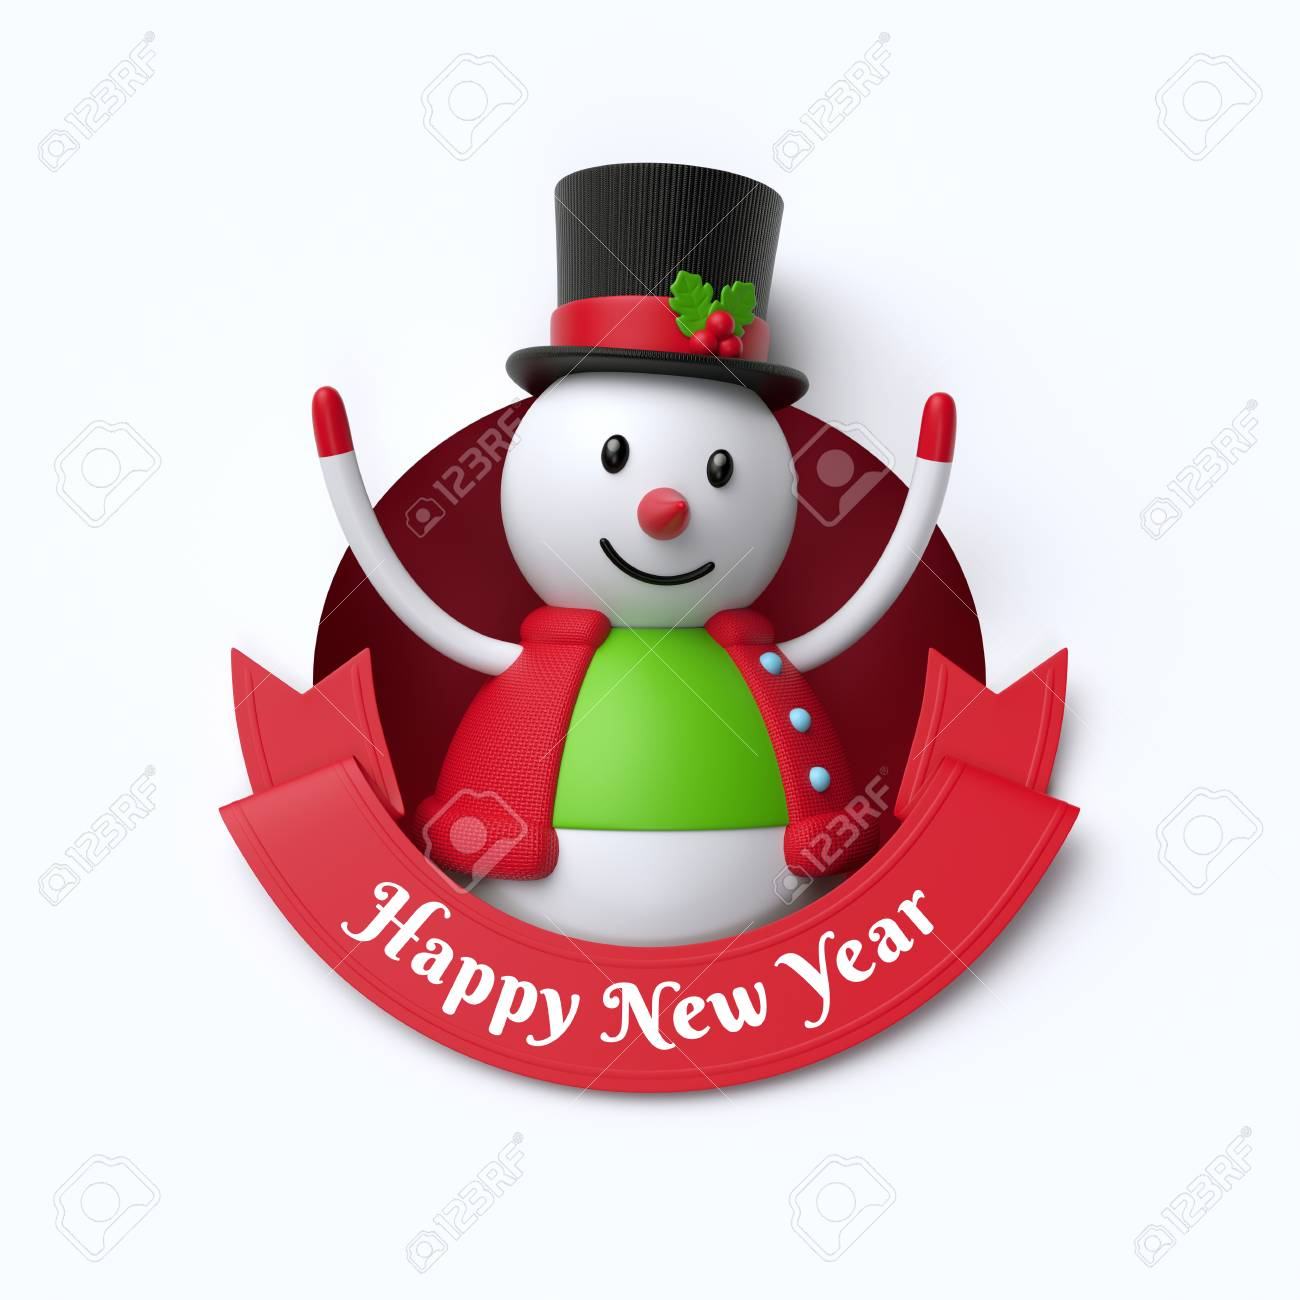 3d render, funny snowman toy, inside round hole, Happy New Year,...